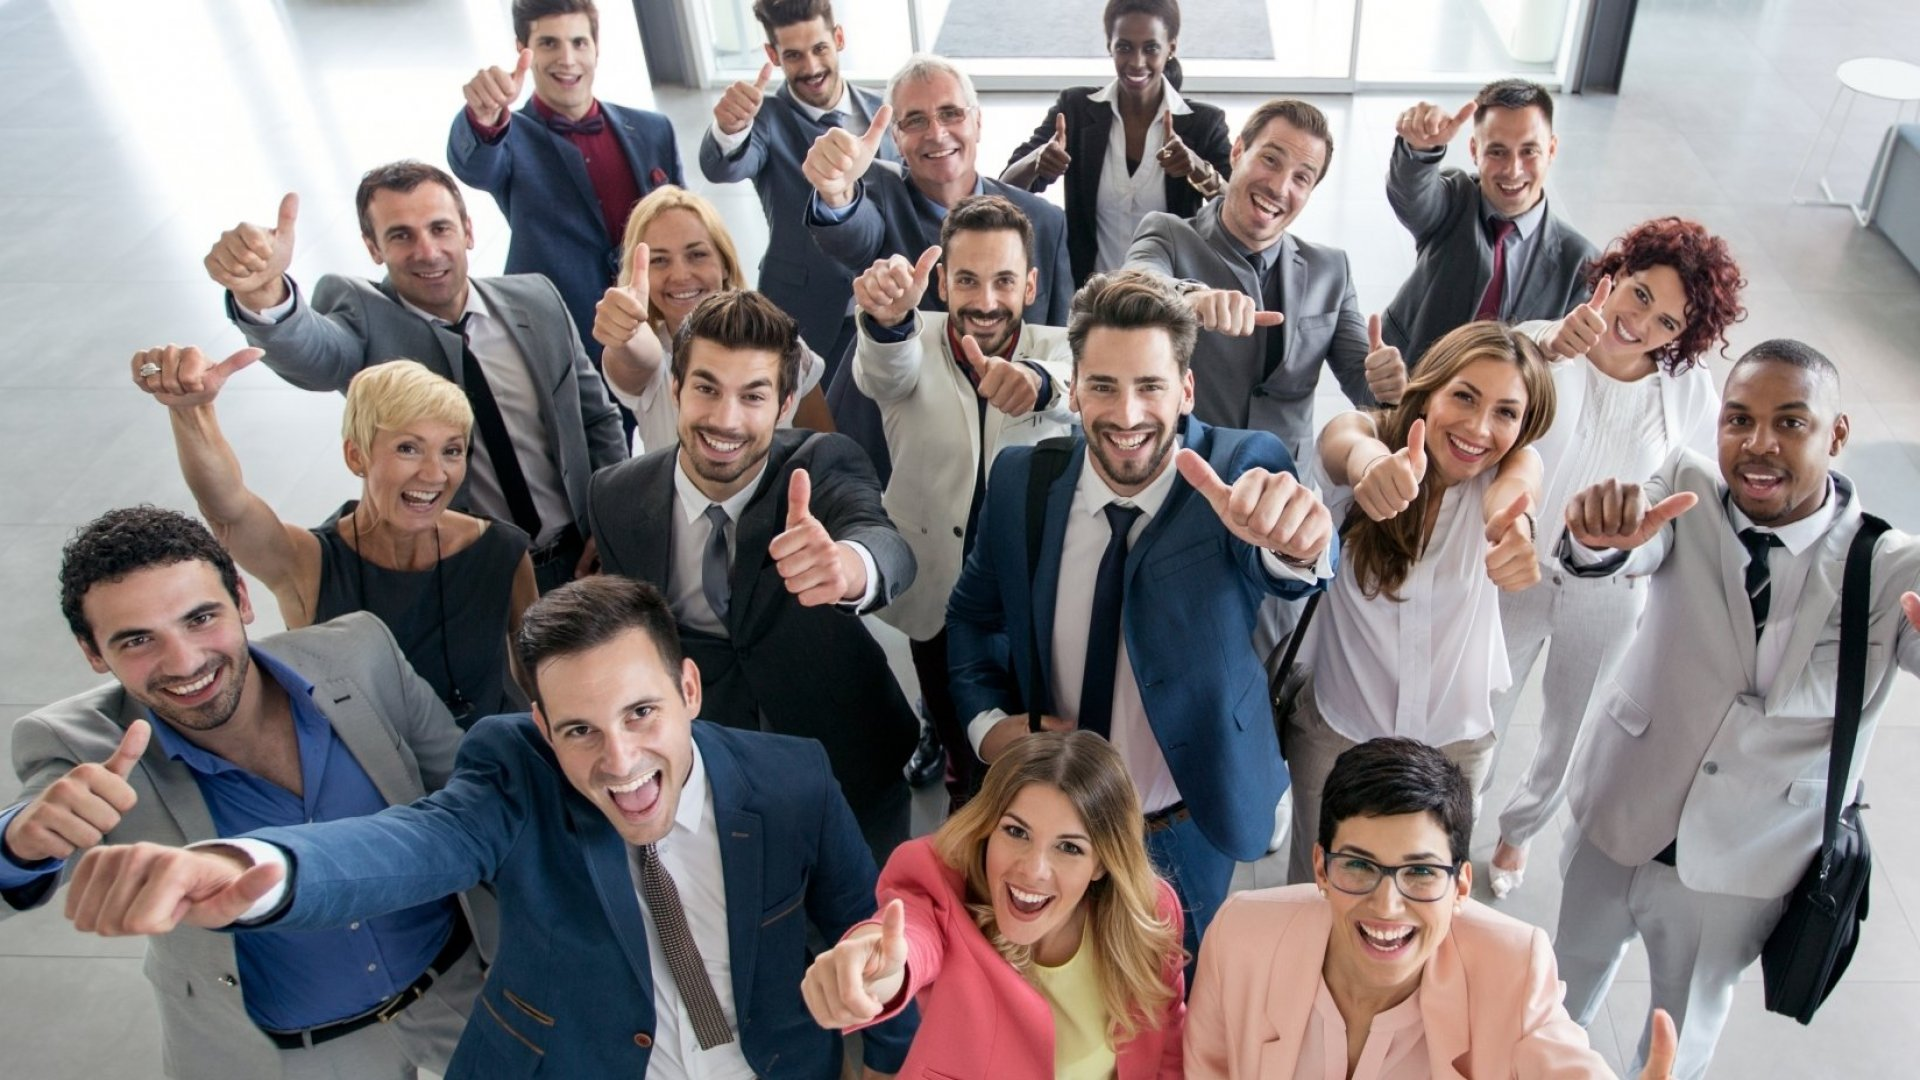 Here's How to Turn Employees Into a Powerful, Focused Team